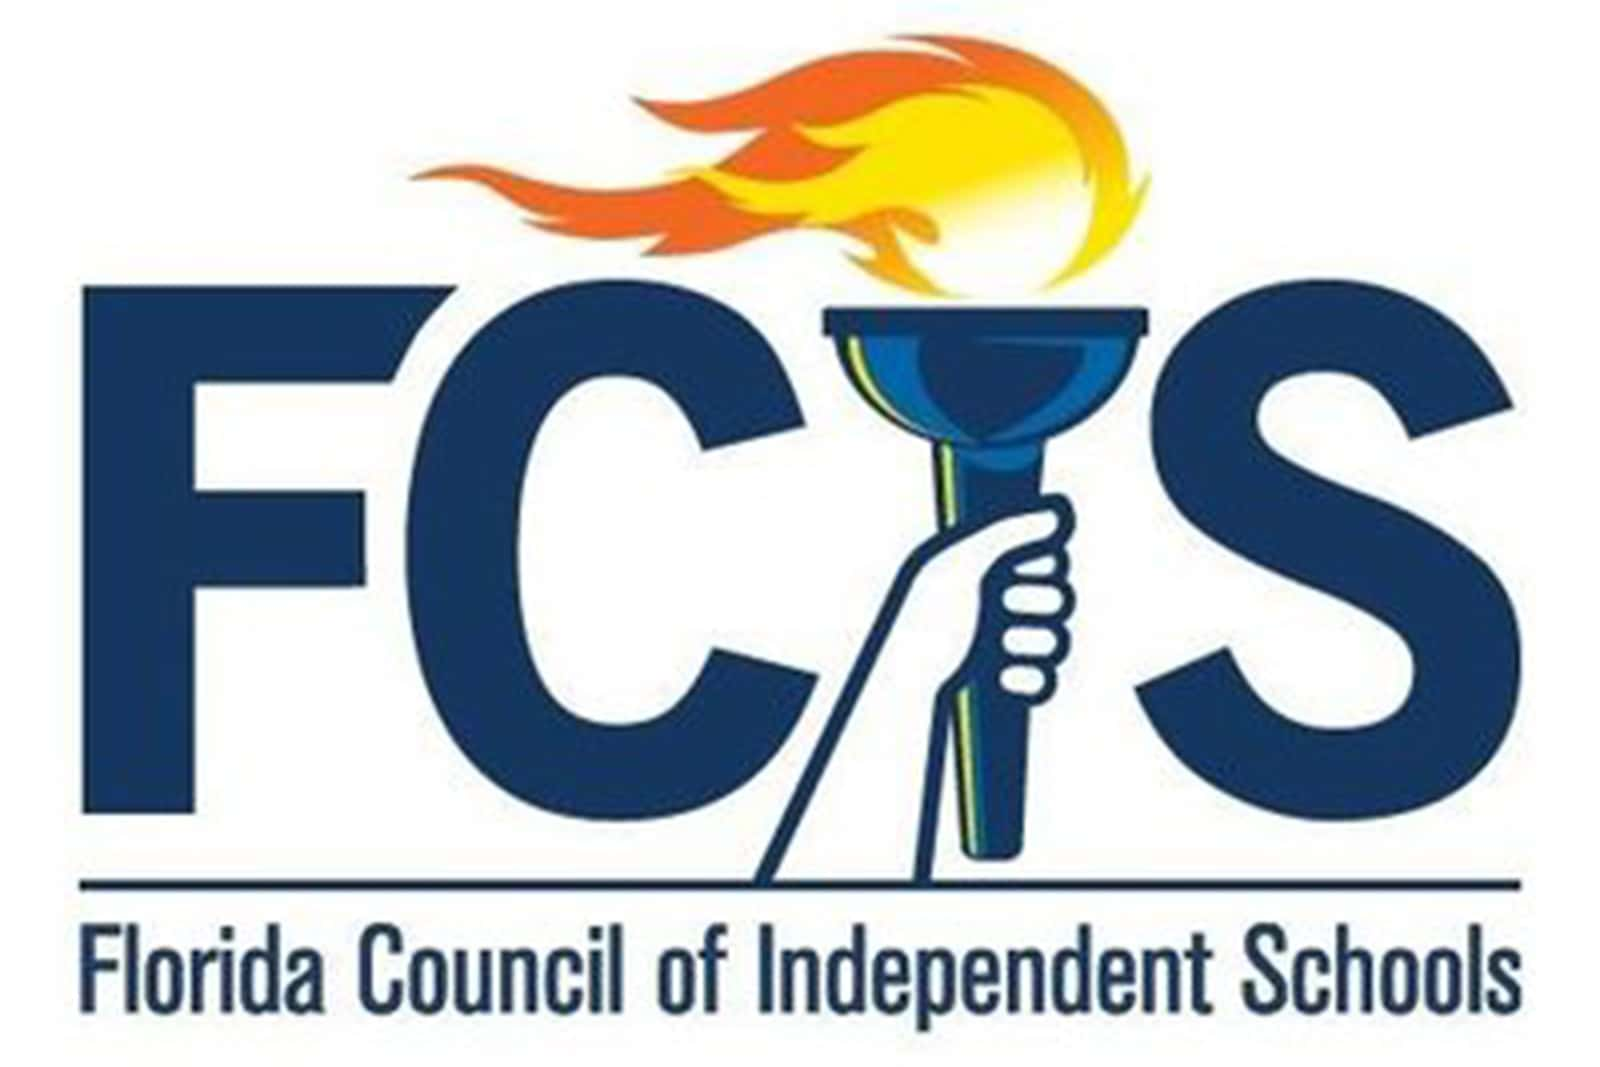 Florida Council of Independent Schools